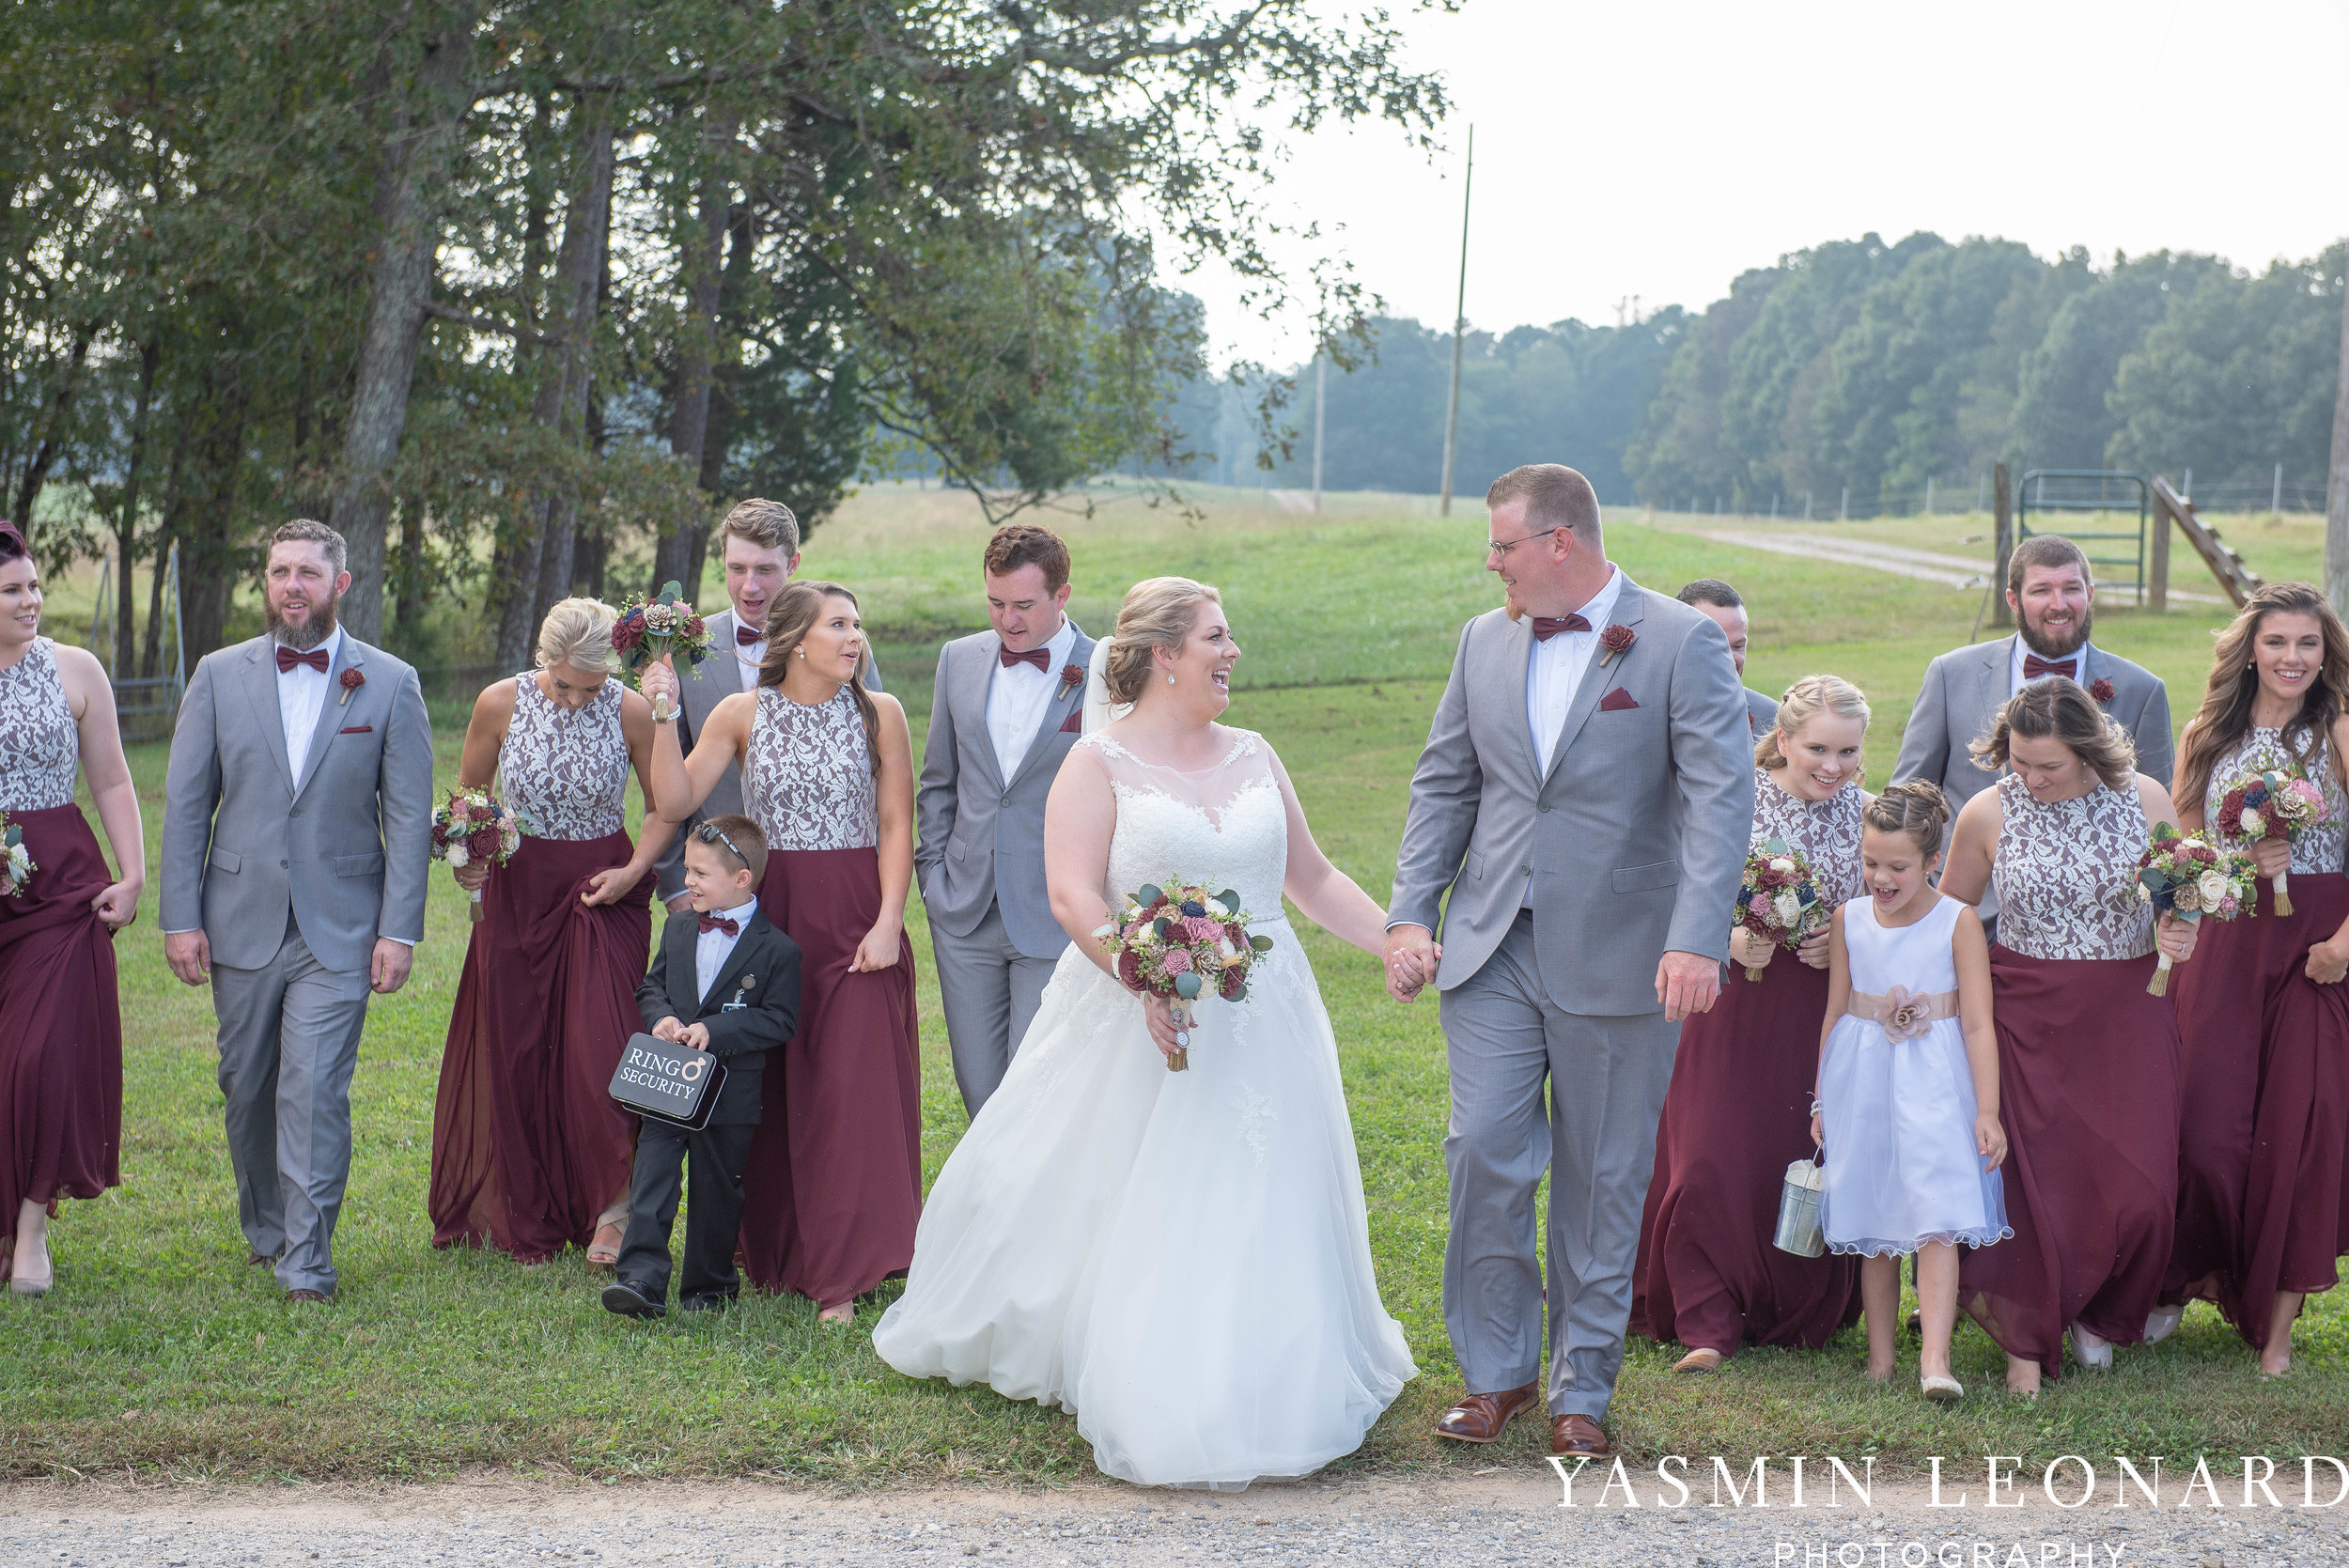 Danner Farms - NC Wedding Venues - NC Barns - Statesville NC - NC Wedding Photographer - High Point Wedding Photographer - Yasmin Leonard Photography-44.jpg